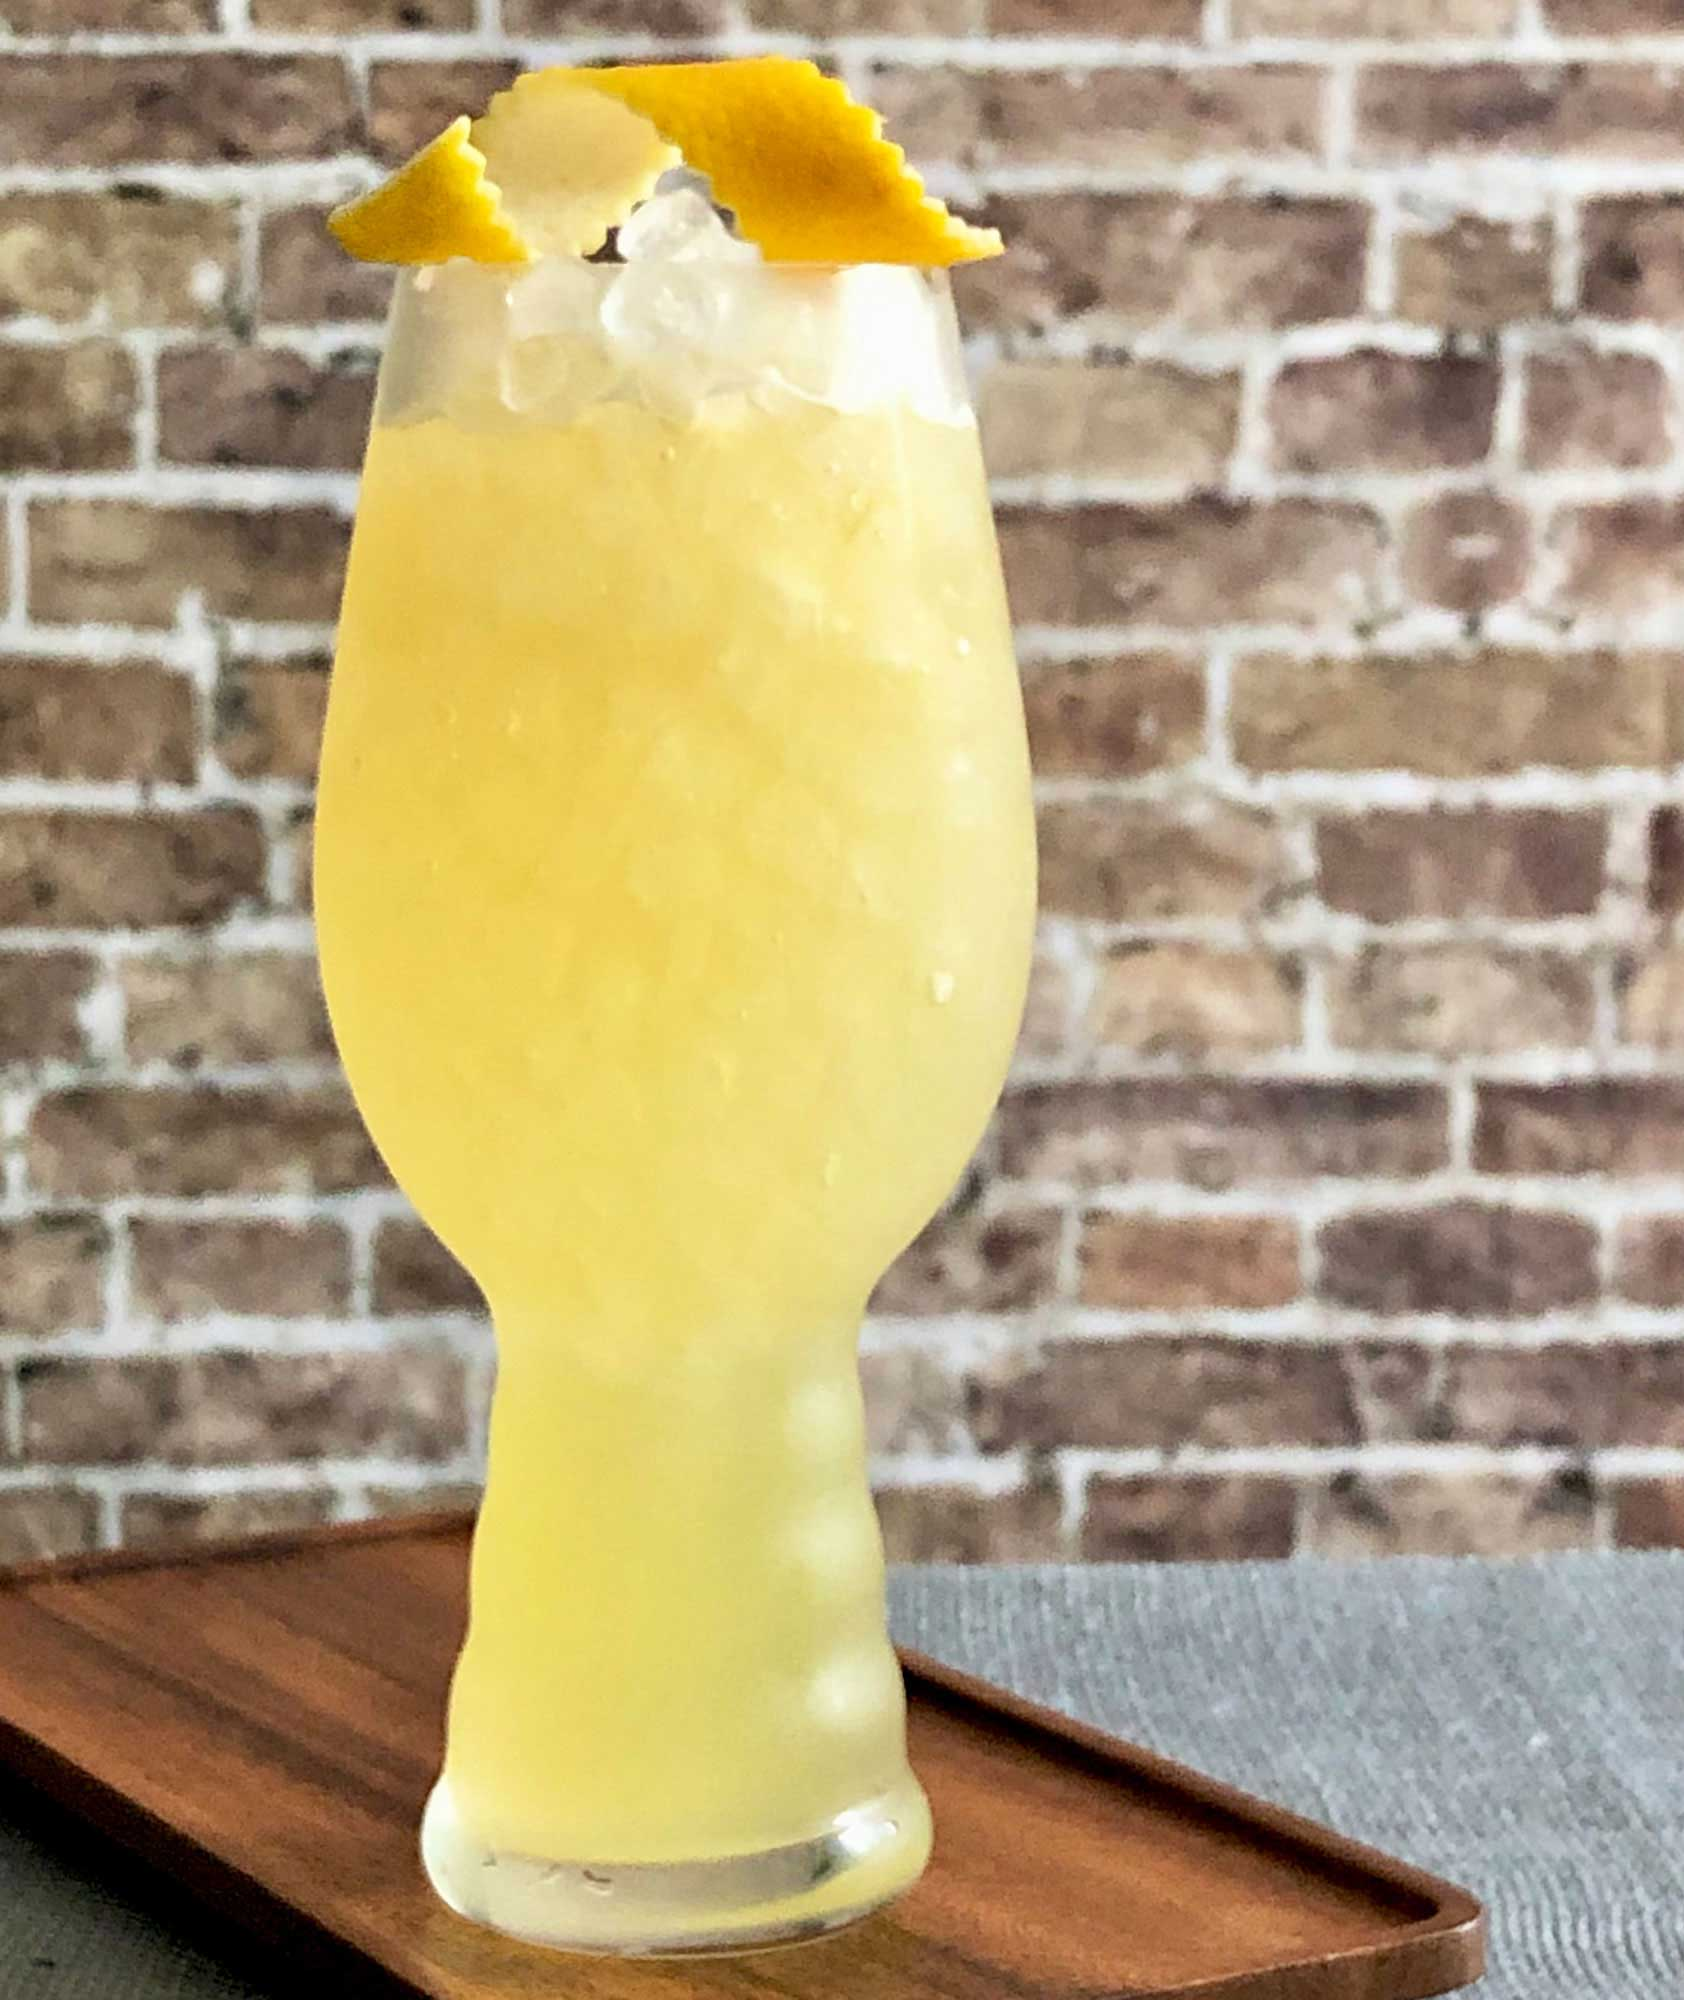 An example of the Strange Brew, the mixed drink (cocktail), adapted from a drink from Death & Co., New York City, featuring india pale ale, Hayman's London Dry Gin, pineapple juice, John D. Taylor's Velvet Falernum, and lemon juice; photo by Lee Edwards